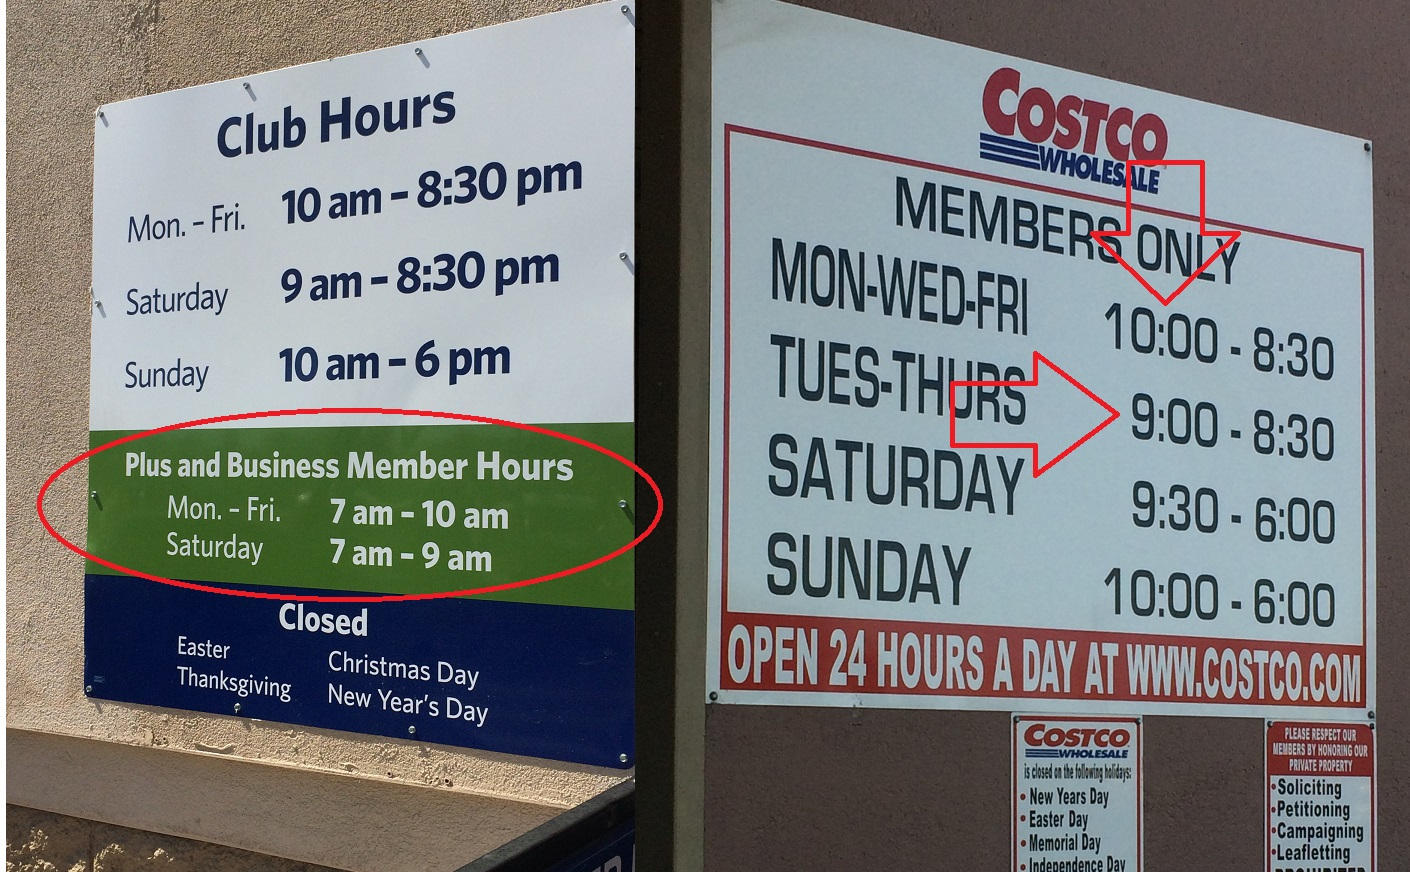 sams club and costco open times - Is Costco Open On Christmas Day